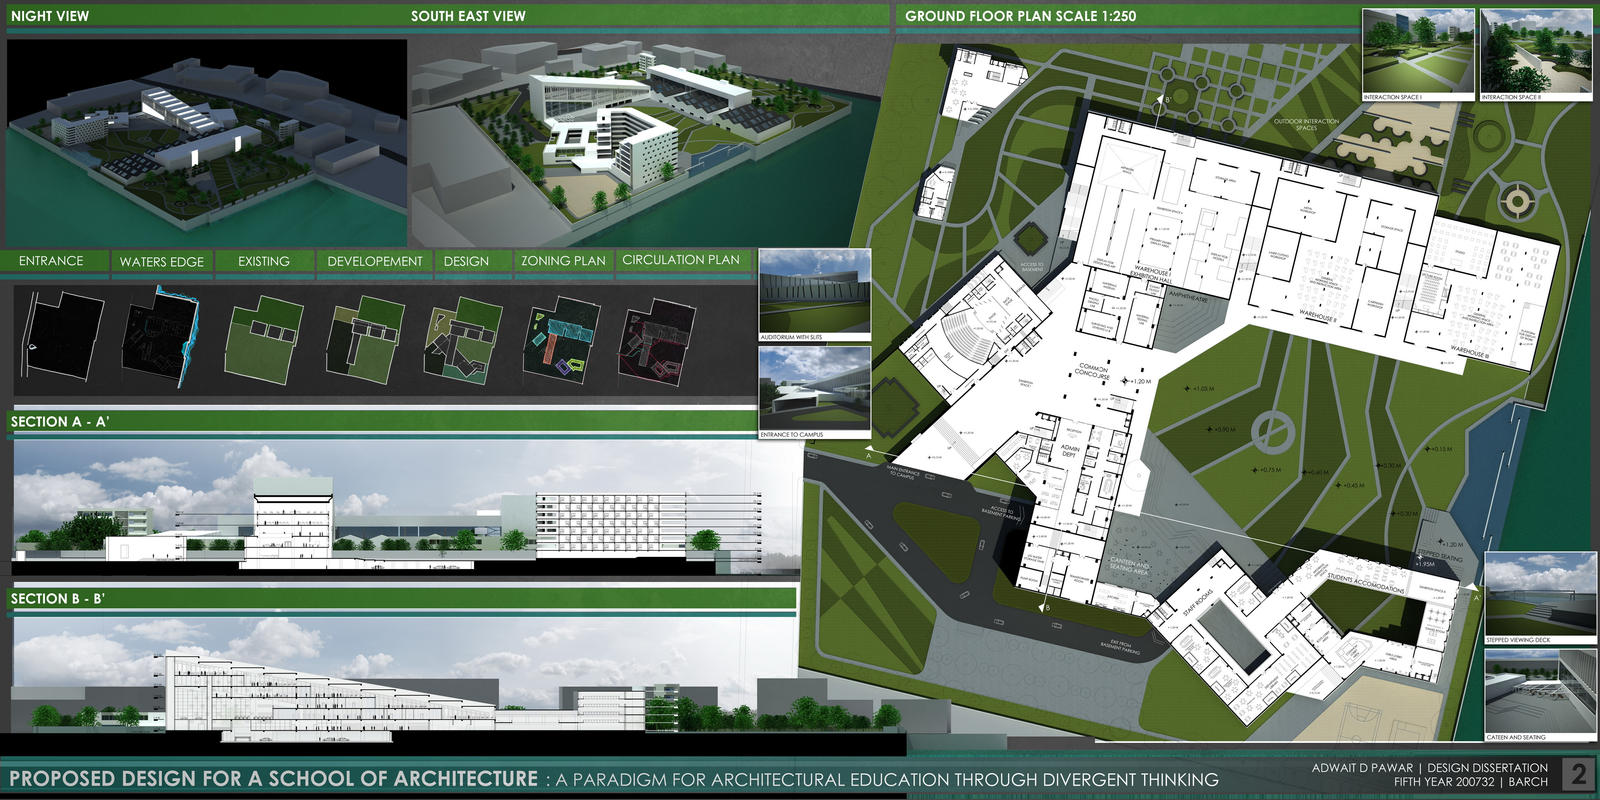 Final year design dissertation 02 by nexiuz69 on deviantart for Buy architectural plans